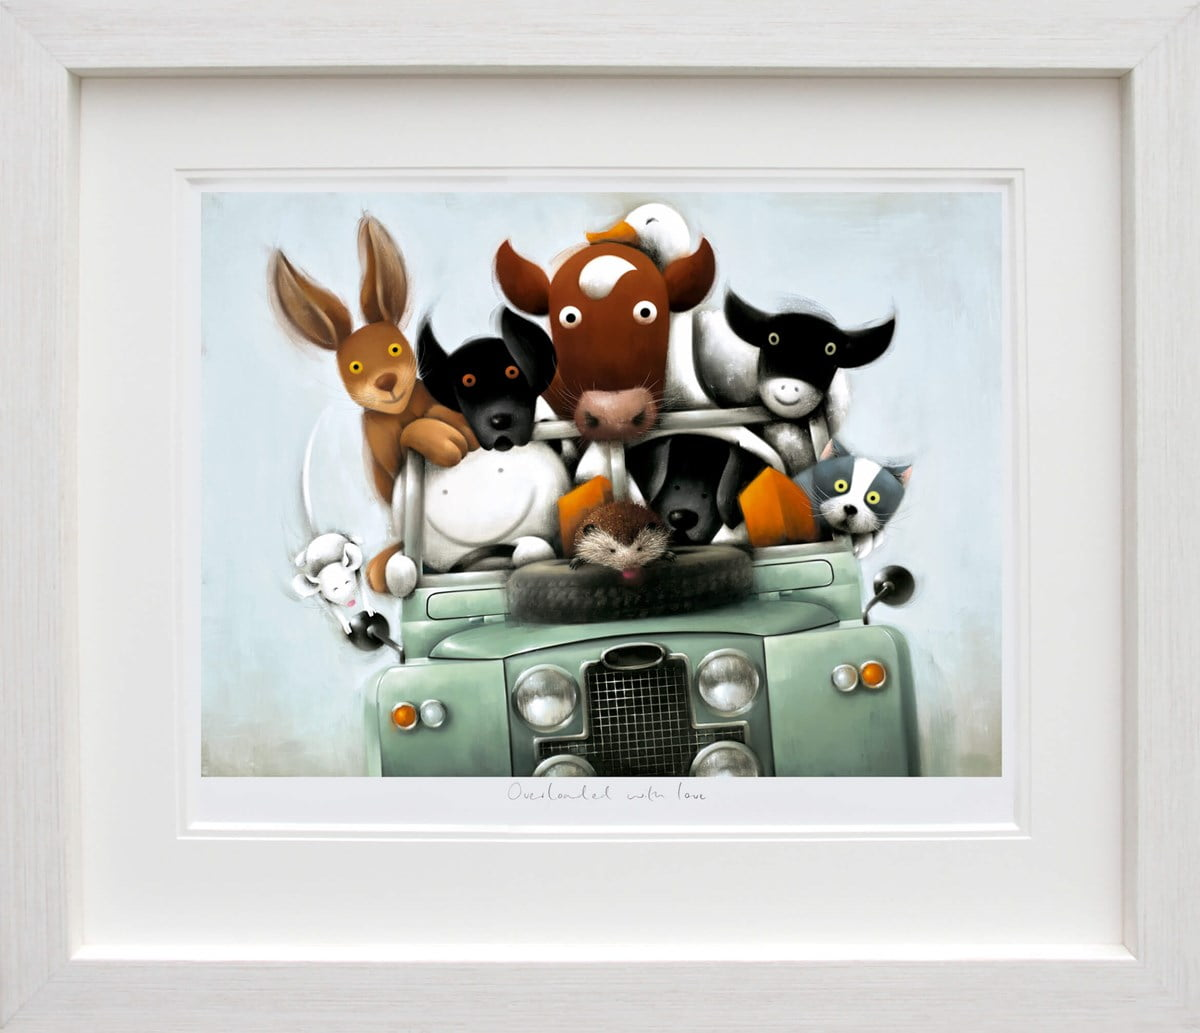 Overloaded with Love ~ Doug Hyde